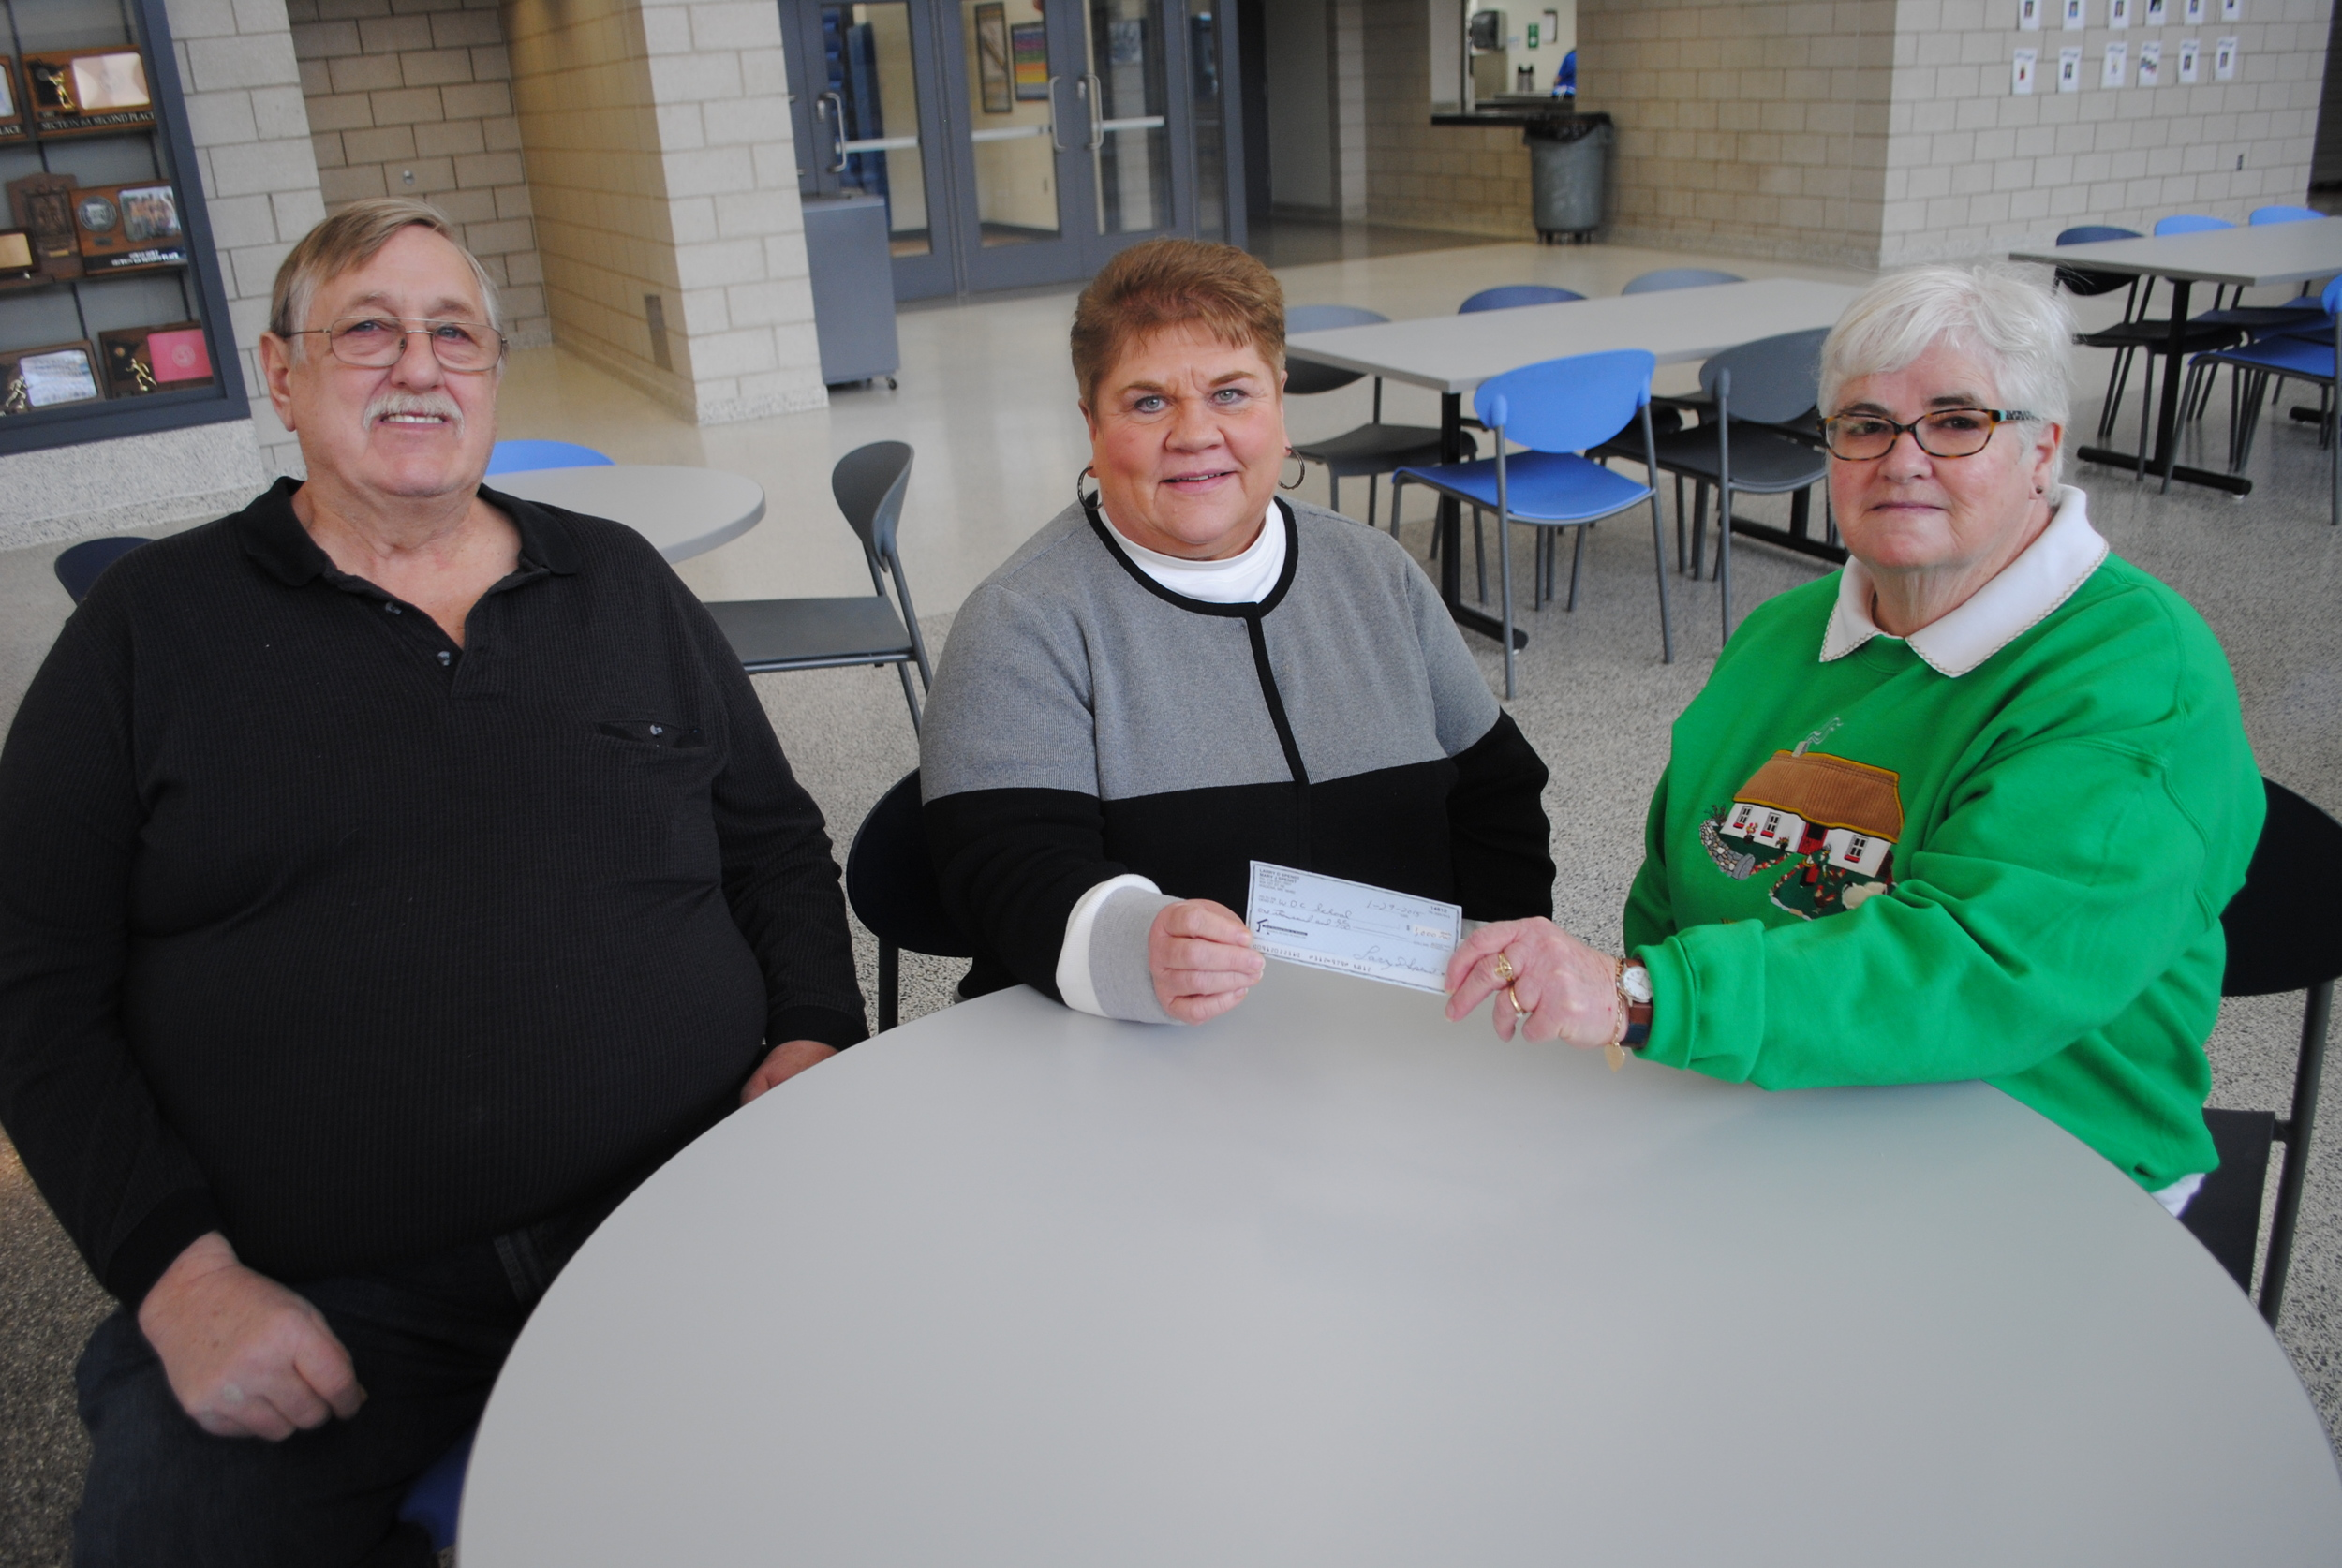 WDC School District senior bookkeeper Joyce Boyne, middle, accepts a $1,000 donation from Larry and Judy Spenst of Wadena to establish a scholarship endowment for graduating special education students at WDC High School.  (Photo by Dana Pavek, WDC Schools)